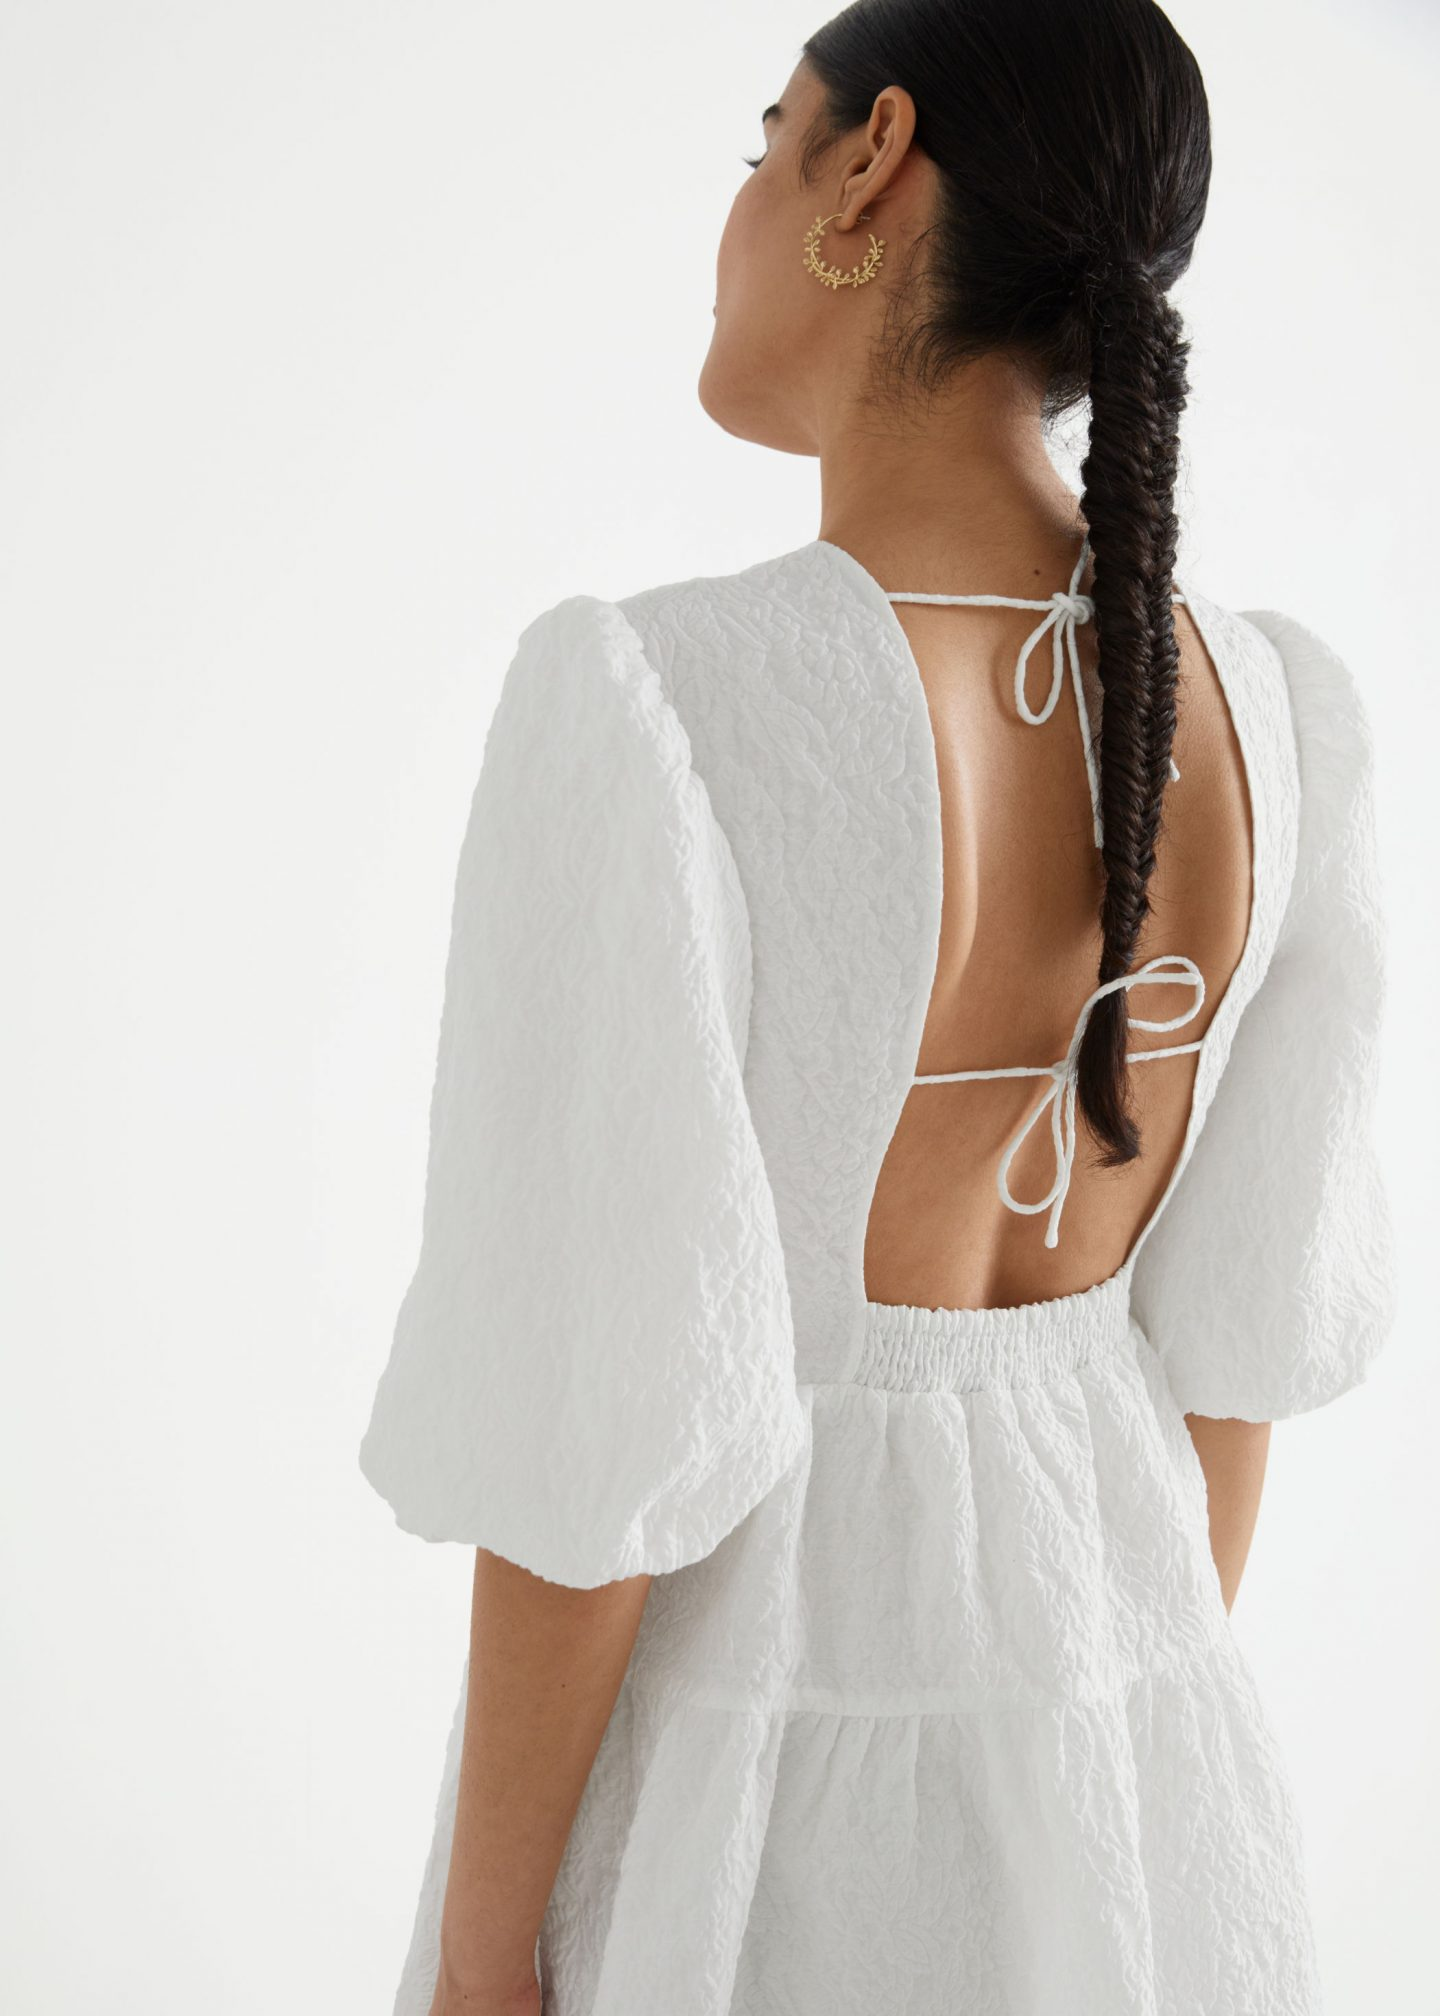 White backless dress with puffy sleeves